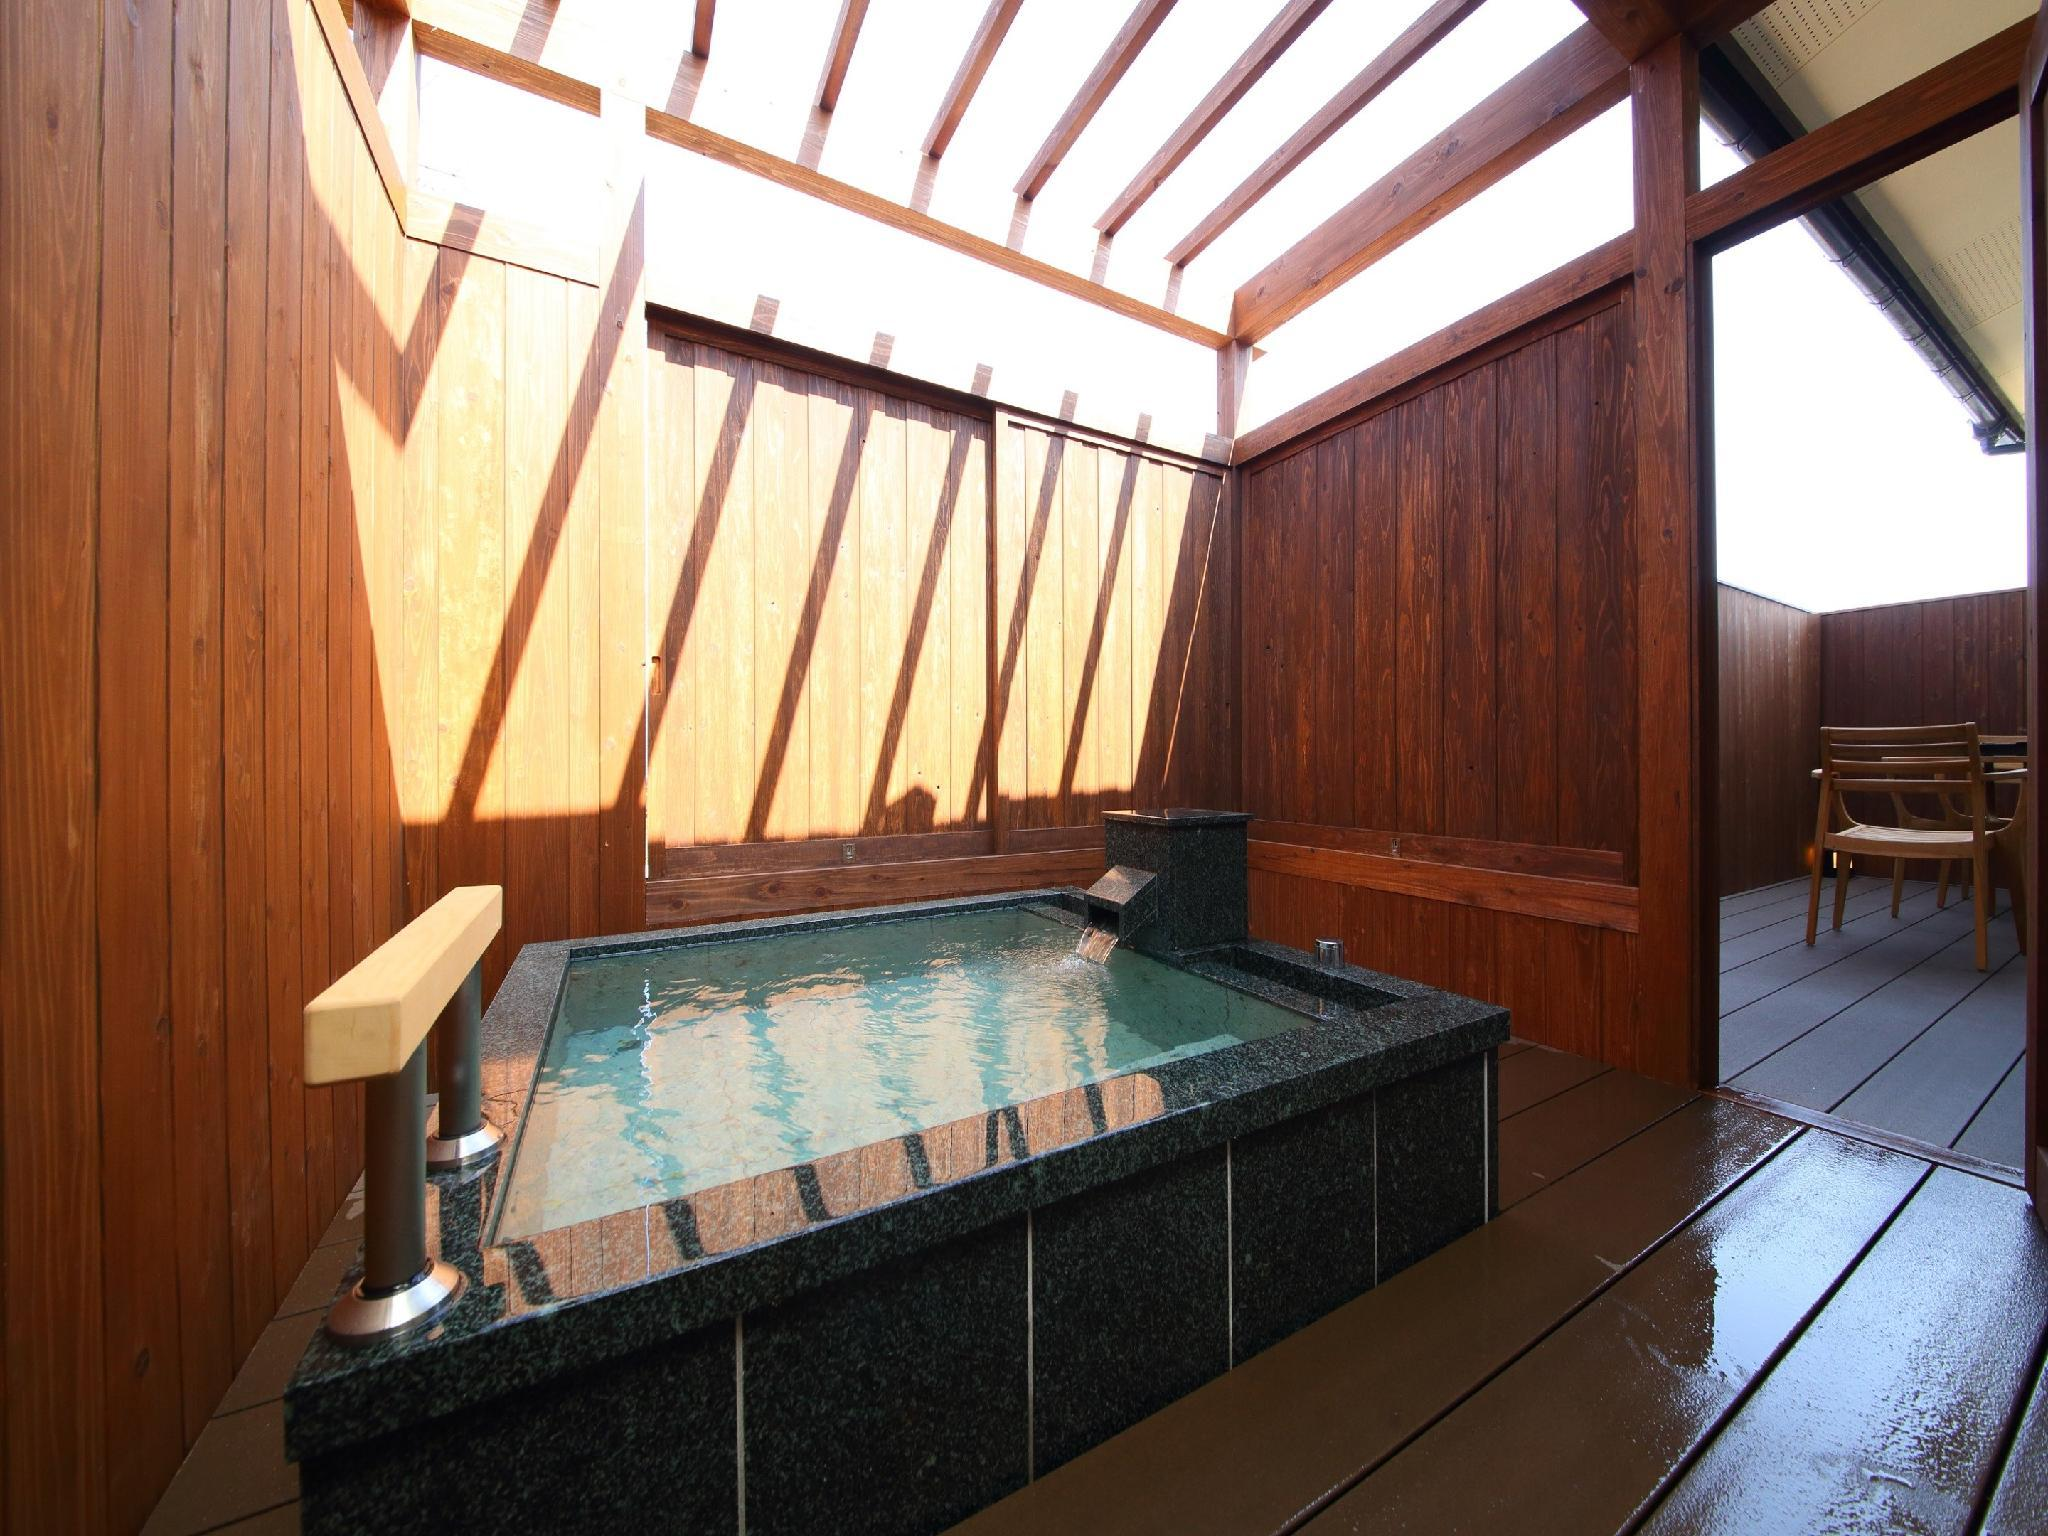 花由區 新裝獨立房A(和洋式房+露天風呂)  (Renovated Detached Japanese/Western-style Room with Open-air Bath (Type A, Hanayoshi Wing) )